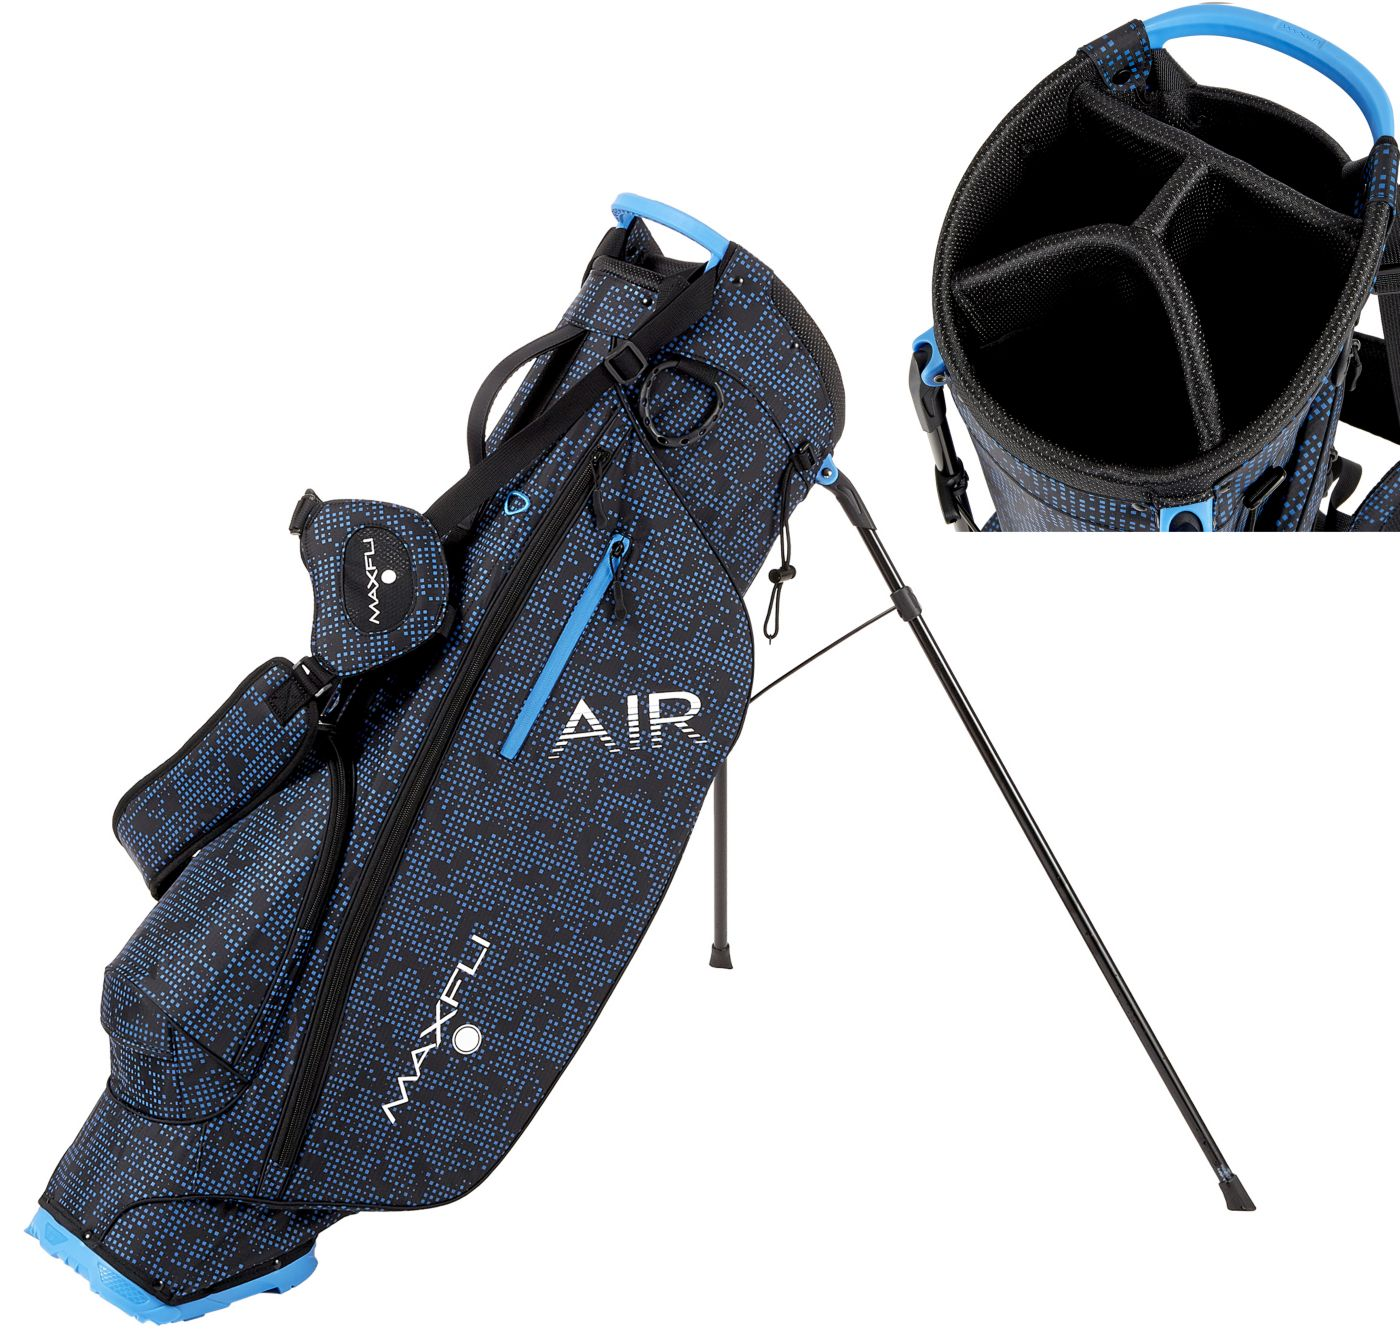 Maxfli Men's 2018 Air Stand Golf Bag